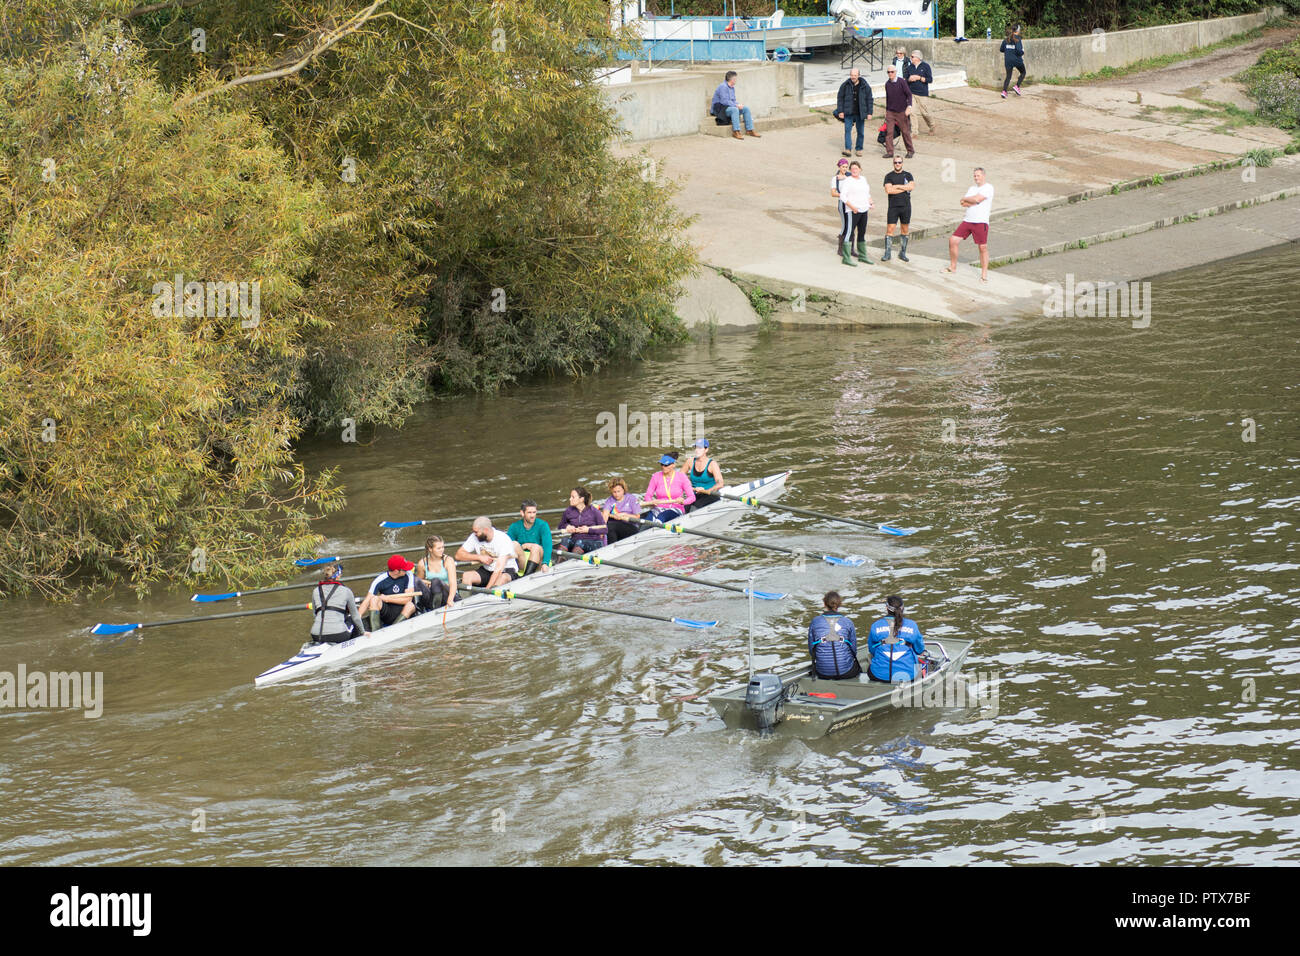 A mixed coxed eight on the River Thames, Barnes, London, SW13, UK - Stock Image